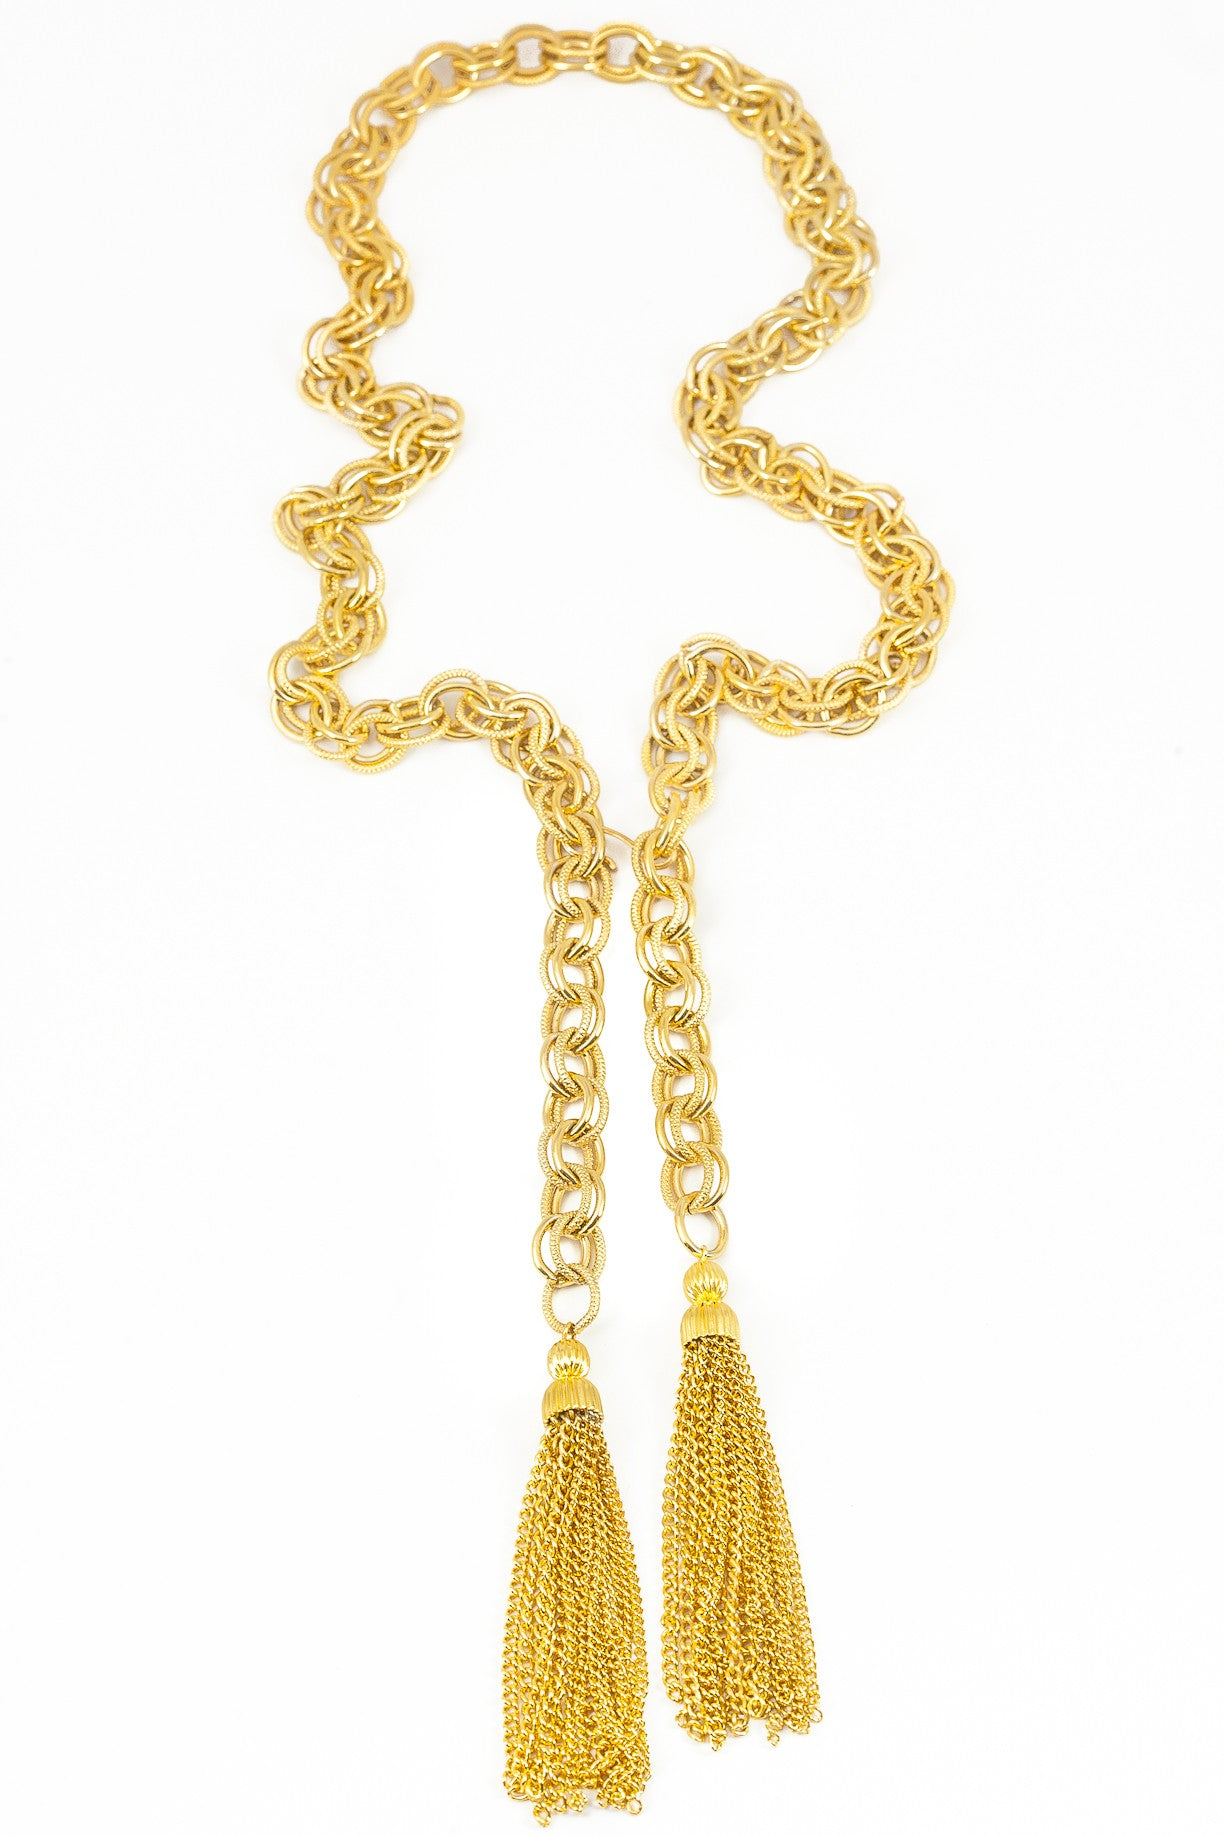 70's__Vintage__Open Double Tassel Necklace